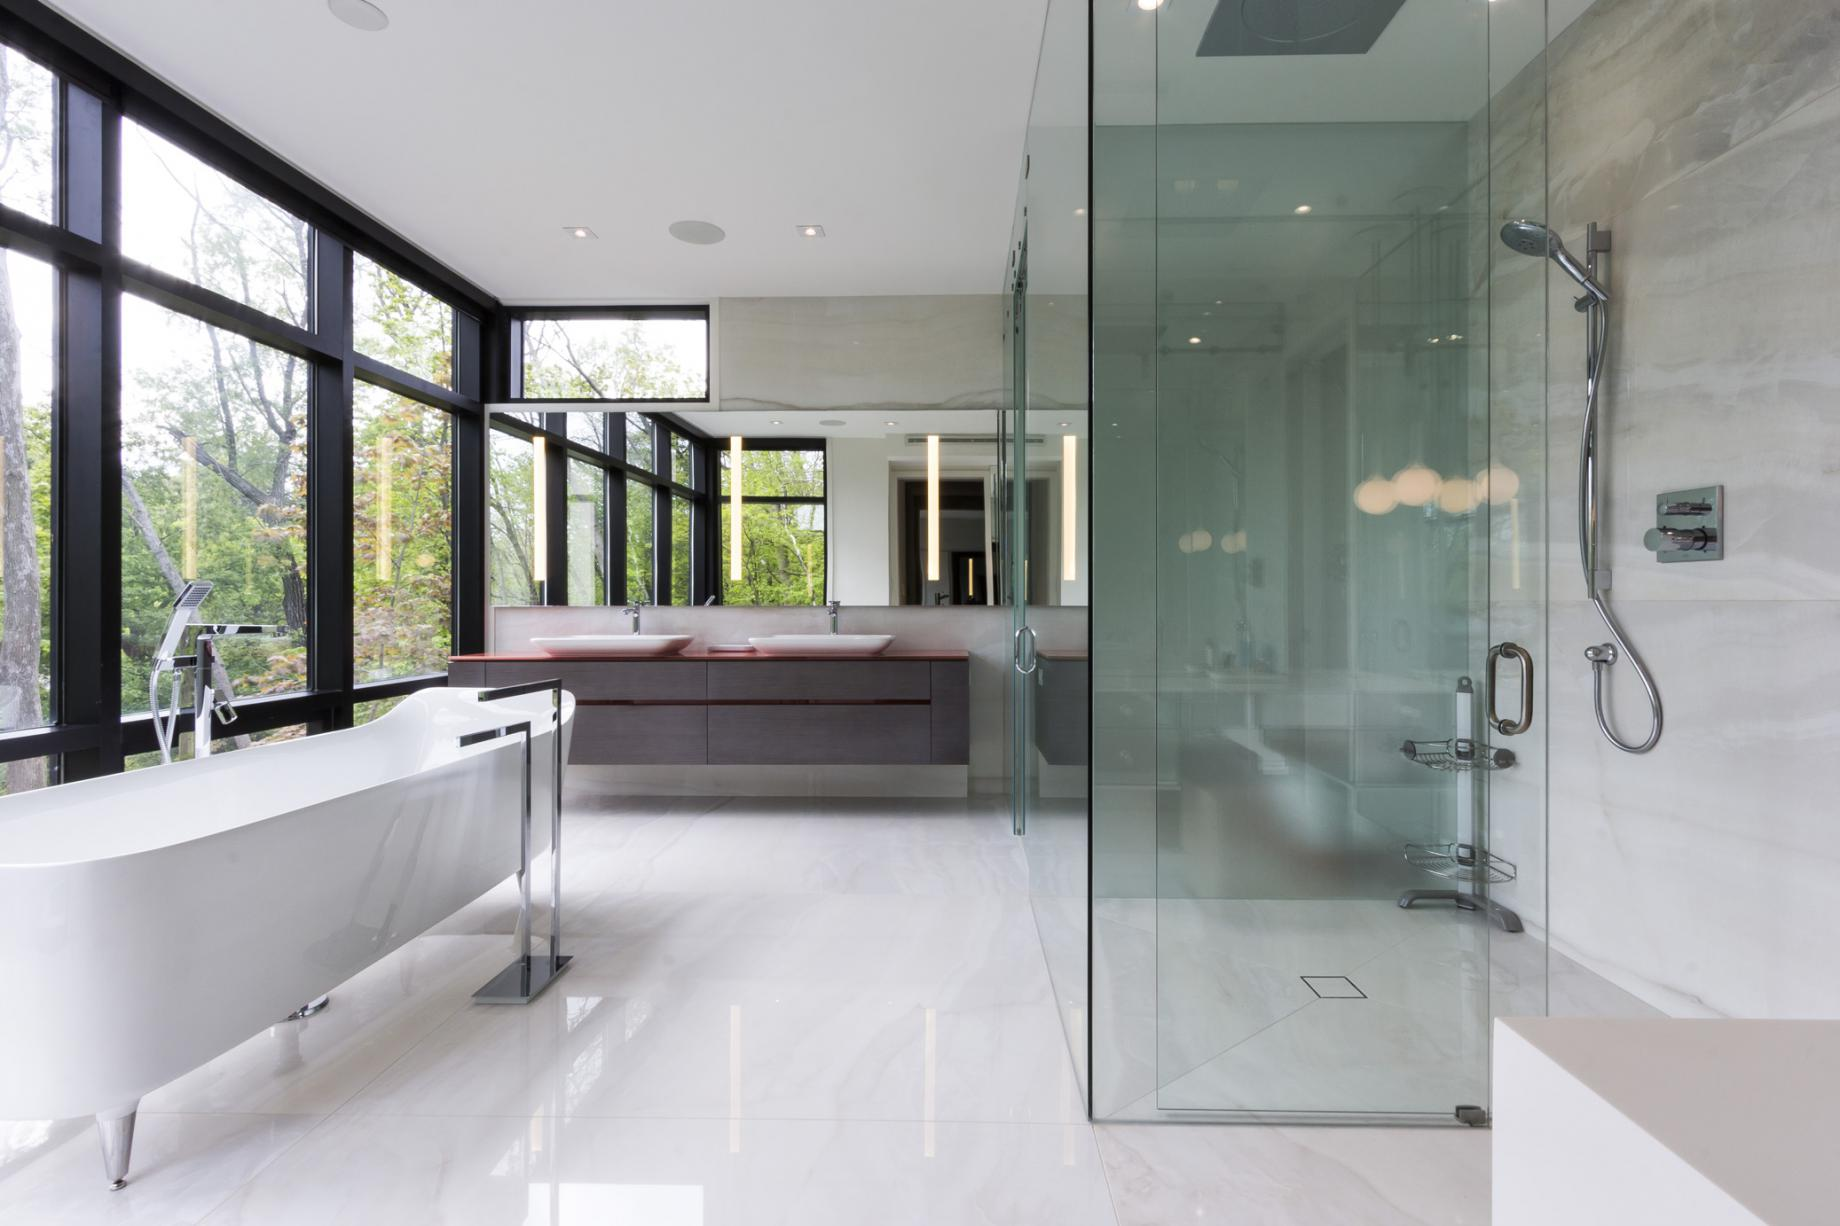 The Glass House master bathroom features remarkable views over the property... and plenty of privacy